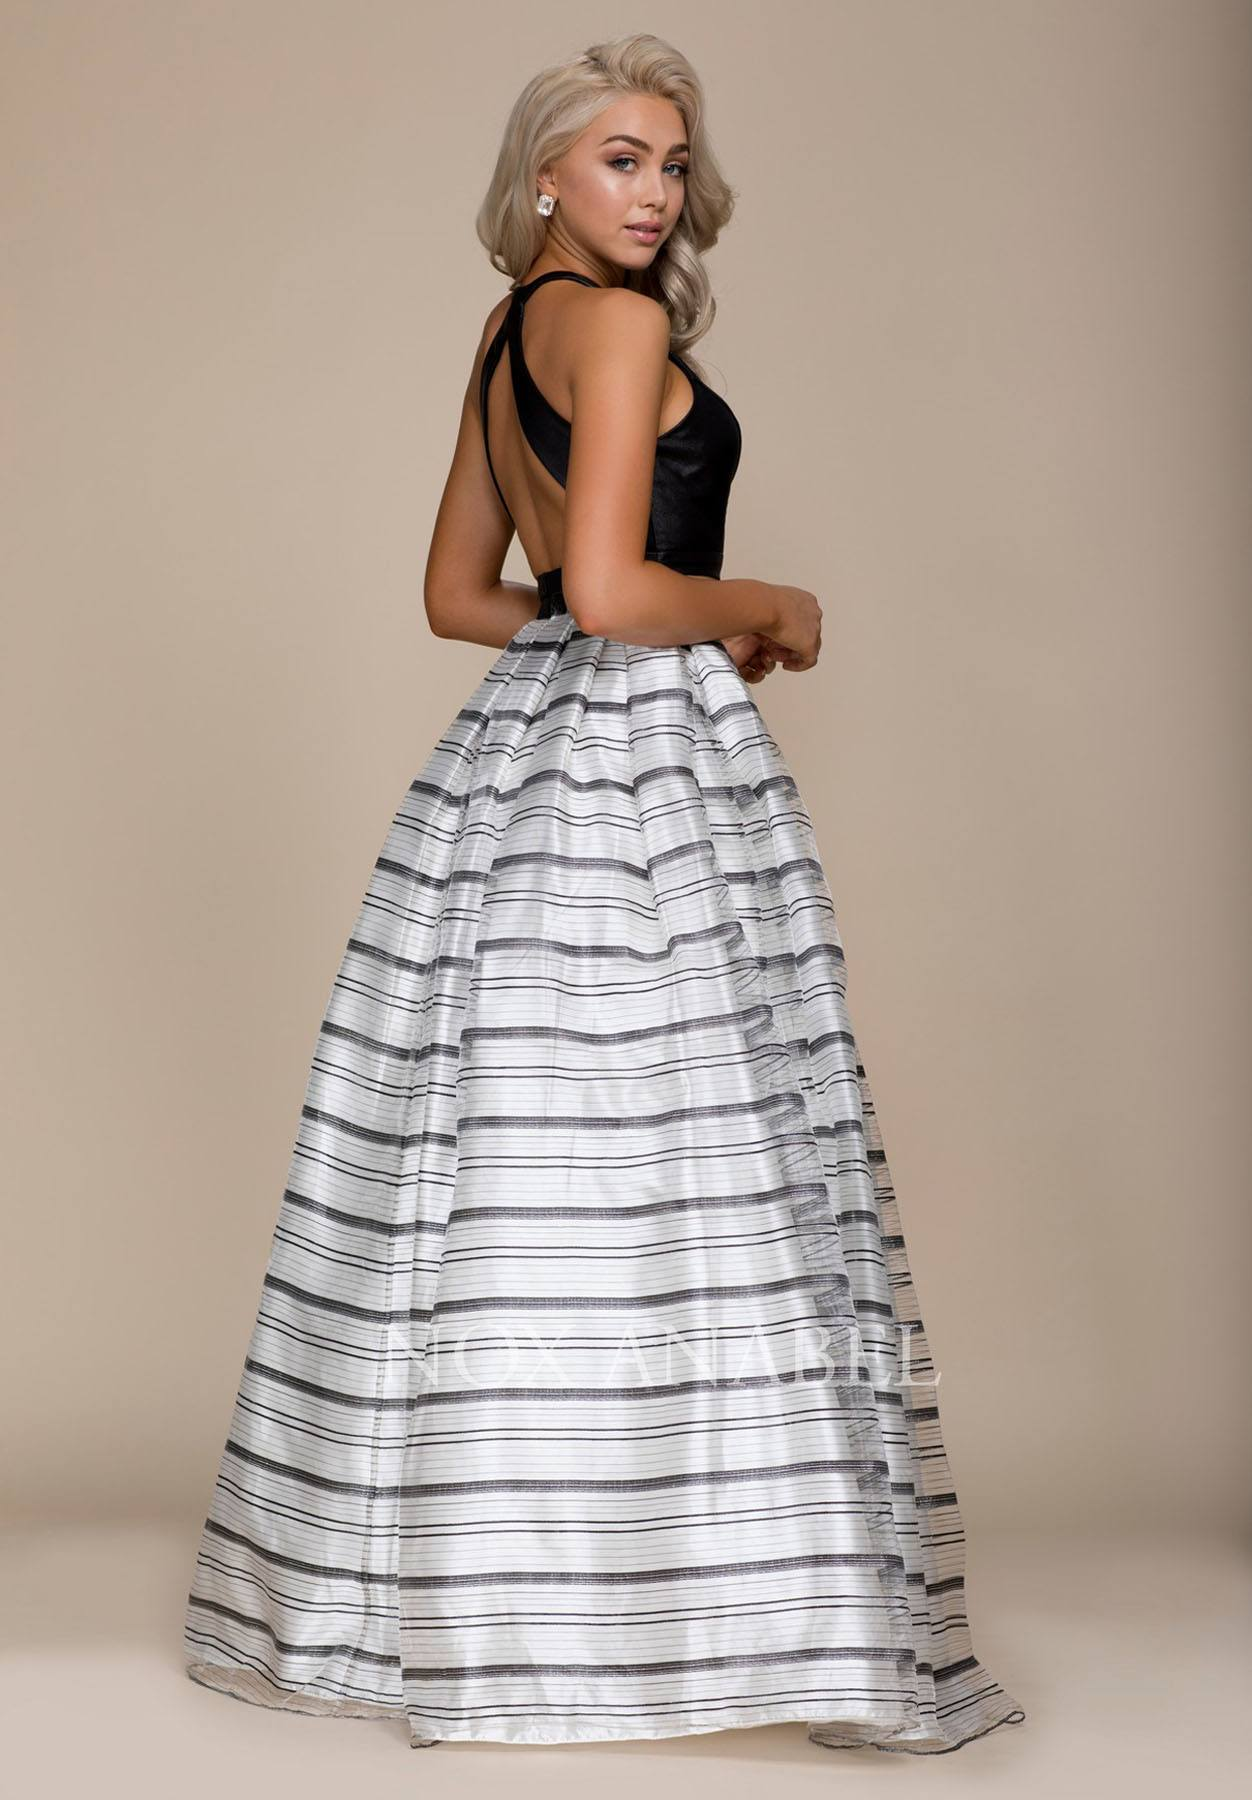 Black Top Striped Skirt Two Piece Long Prom Dress Discountdressshop